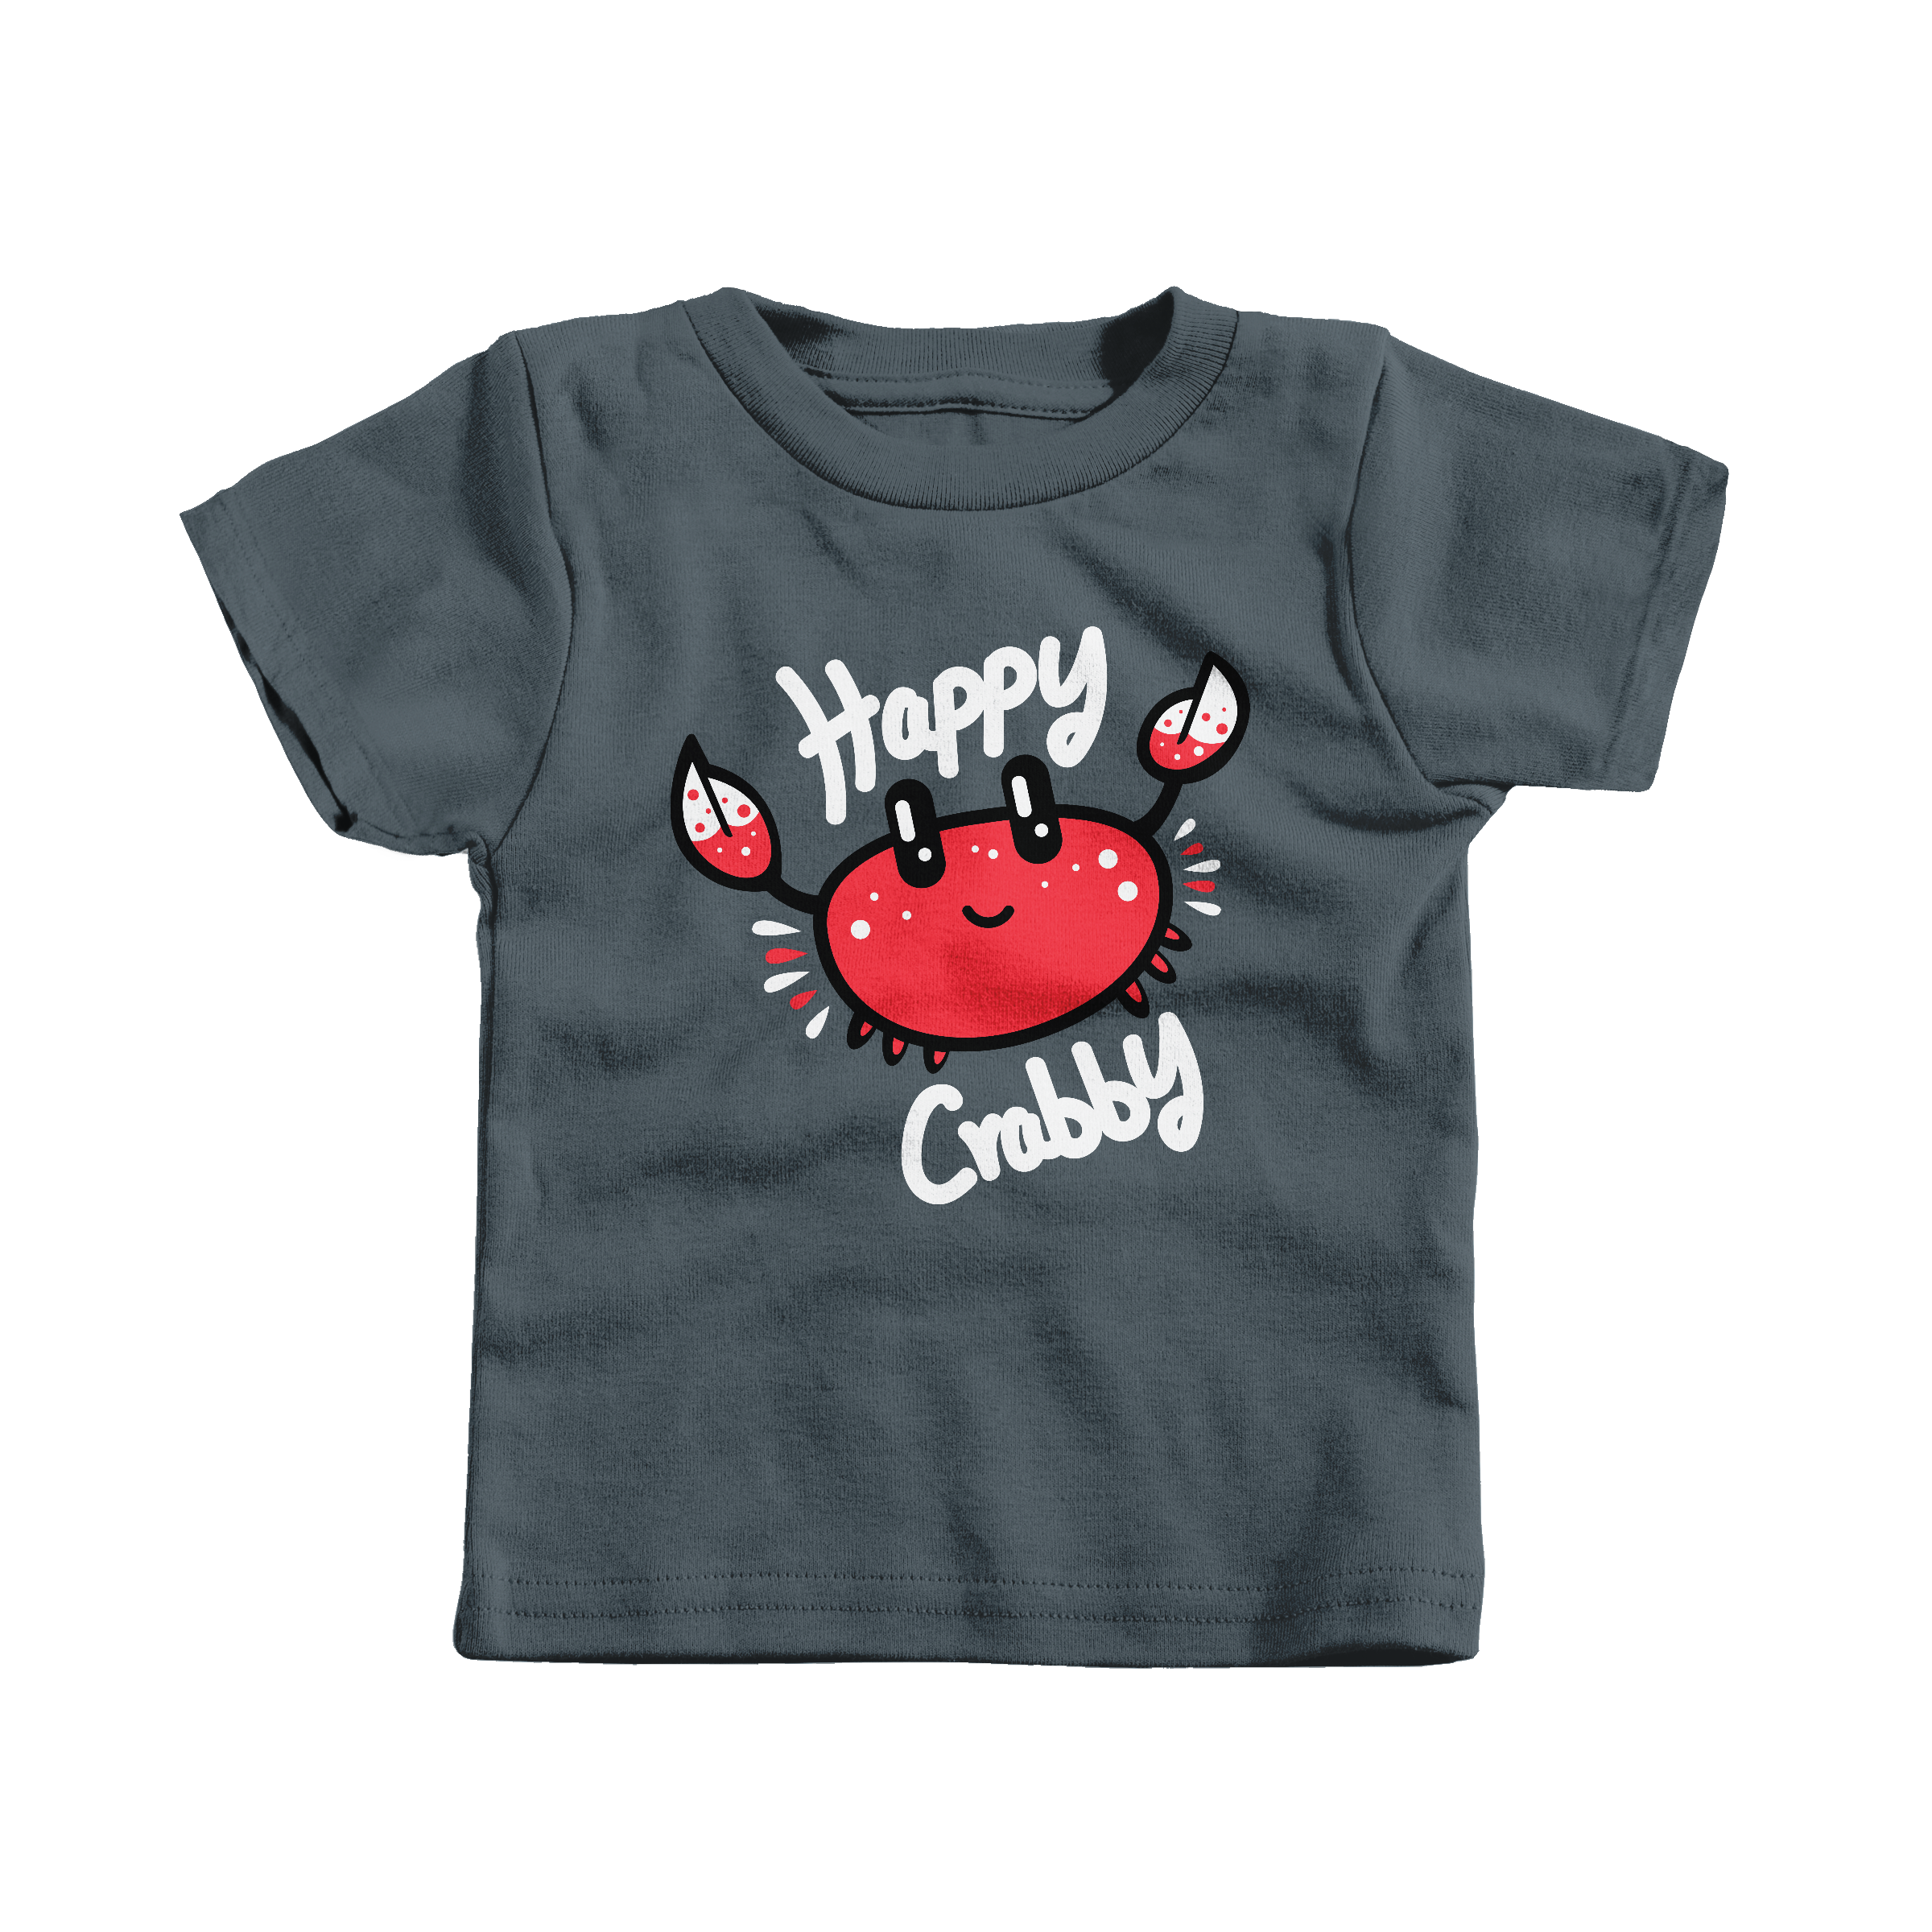 Happy Crabby Charcoal (T-Shirt)